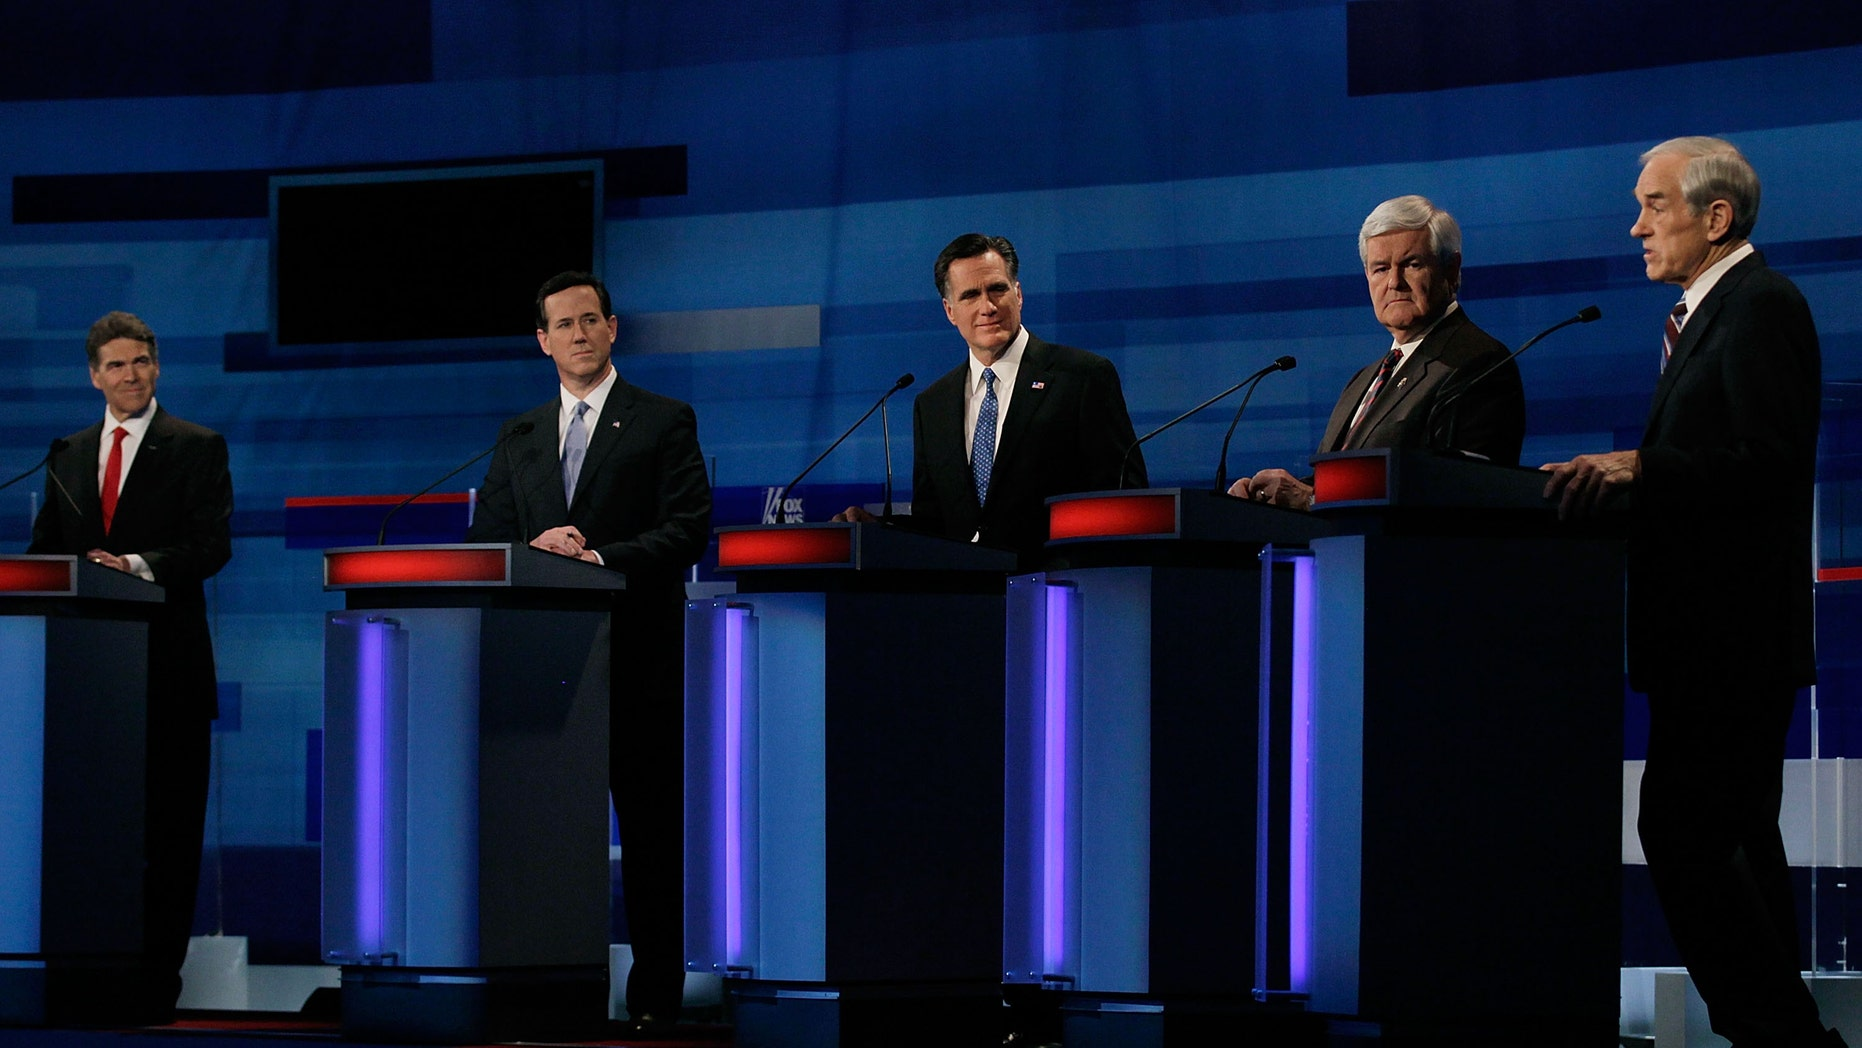 MYRTLE BEACH, SC - JANUARY 16: Republican presidential candidates (L-R) Texas Gov. Rick Perry, former U.S. Sen. Rick Santorum (R-PA), former Massachusetts Gov. Mitt Romney, former U.S. House Speaker Newt Gingrich (R-GA) and U.S. Rep. Ron Paul (R-TX) participate in a Fox News, Wall Street Journal-sponsored debate at the Myrtle Beach Convention Center, on January 16, 2012 in Myrtle Beach, South Carolina. Voters in South Carolina will head to the polls on January 21st. to vote in the Republican primary election to pick their choice for U.S. presidential candidate. (Photo by Joe Raedle/Getty Images)